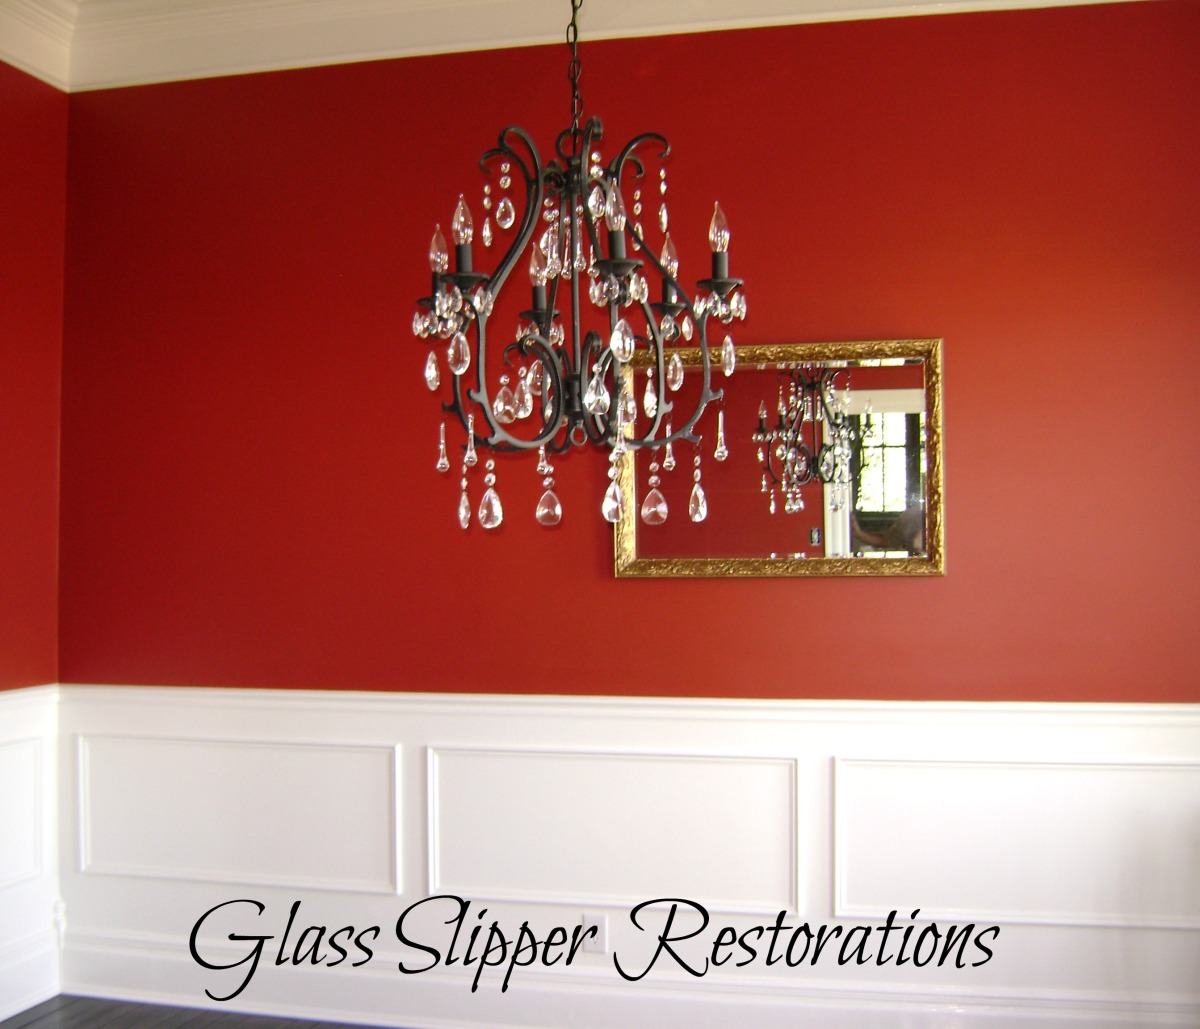 Dining room with red walls and faux wainscoting (picture frame mouldings)